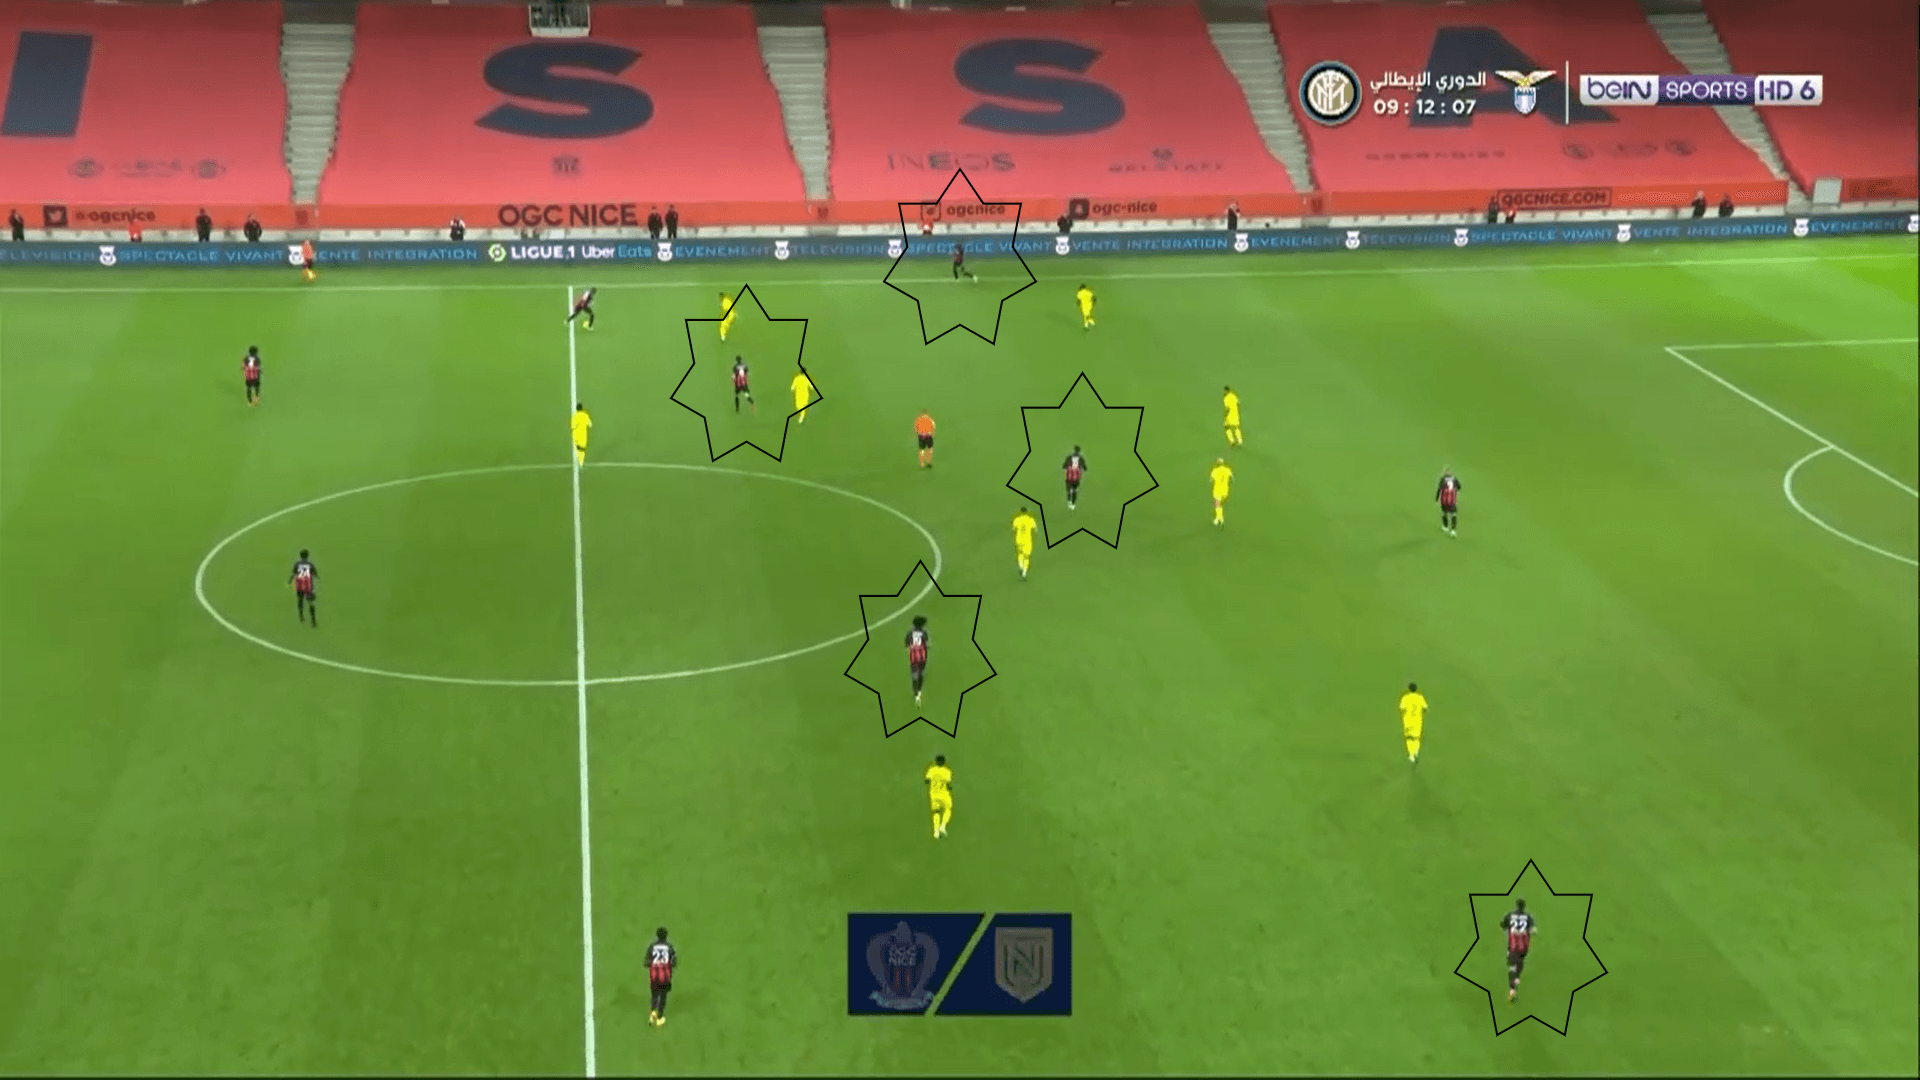 Ligue 1 2020/21: Nice vs Nantes - tactical analysis tactics